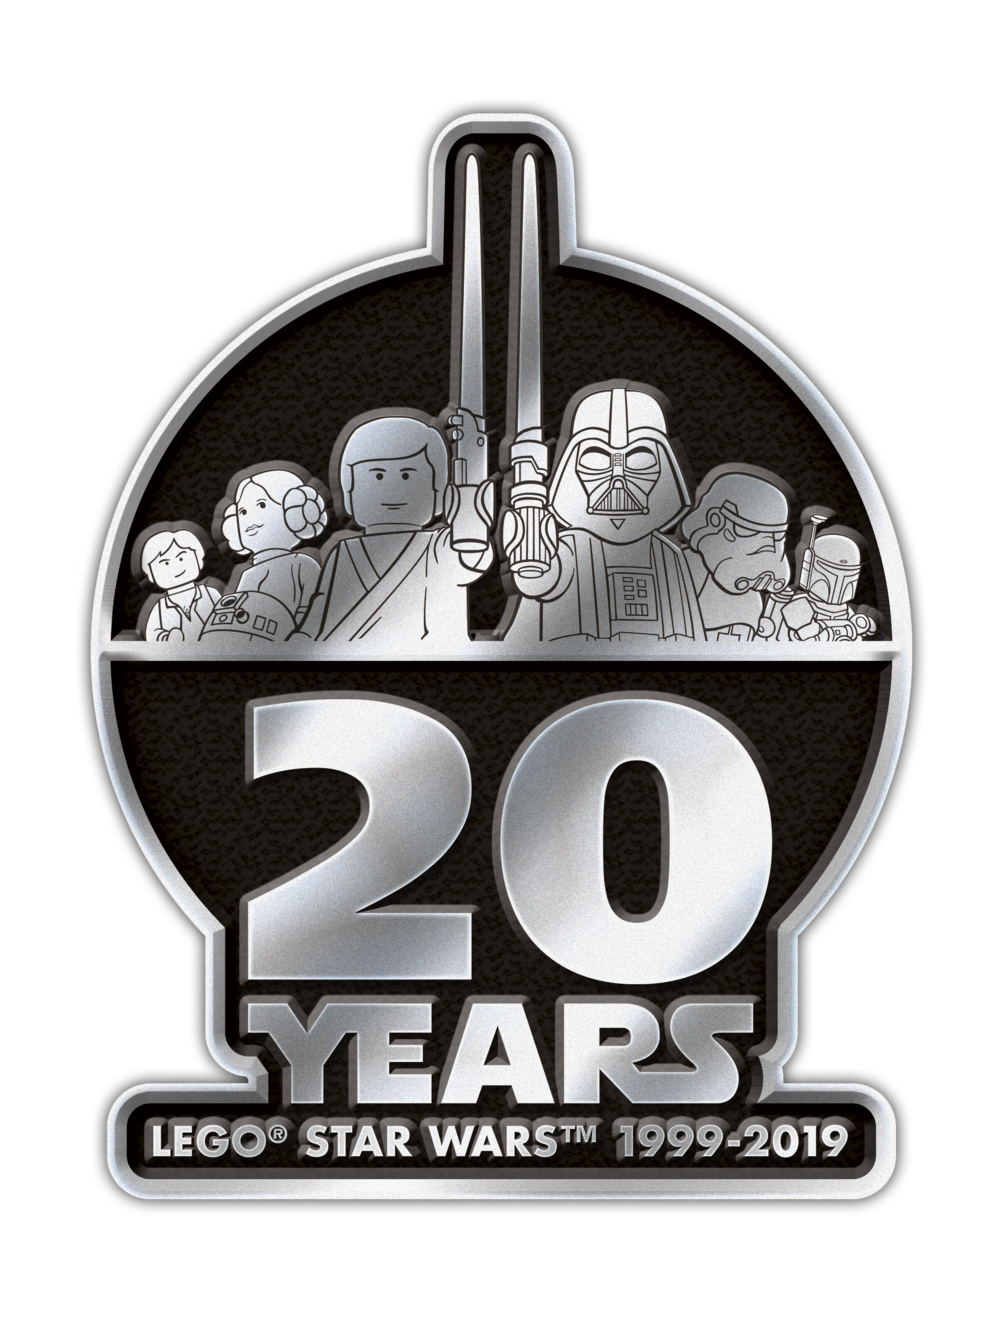 Celebrate 20 years of LEGO Star Wars with fun facts and brand new